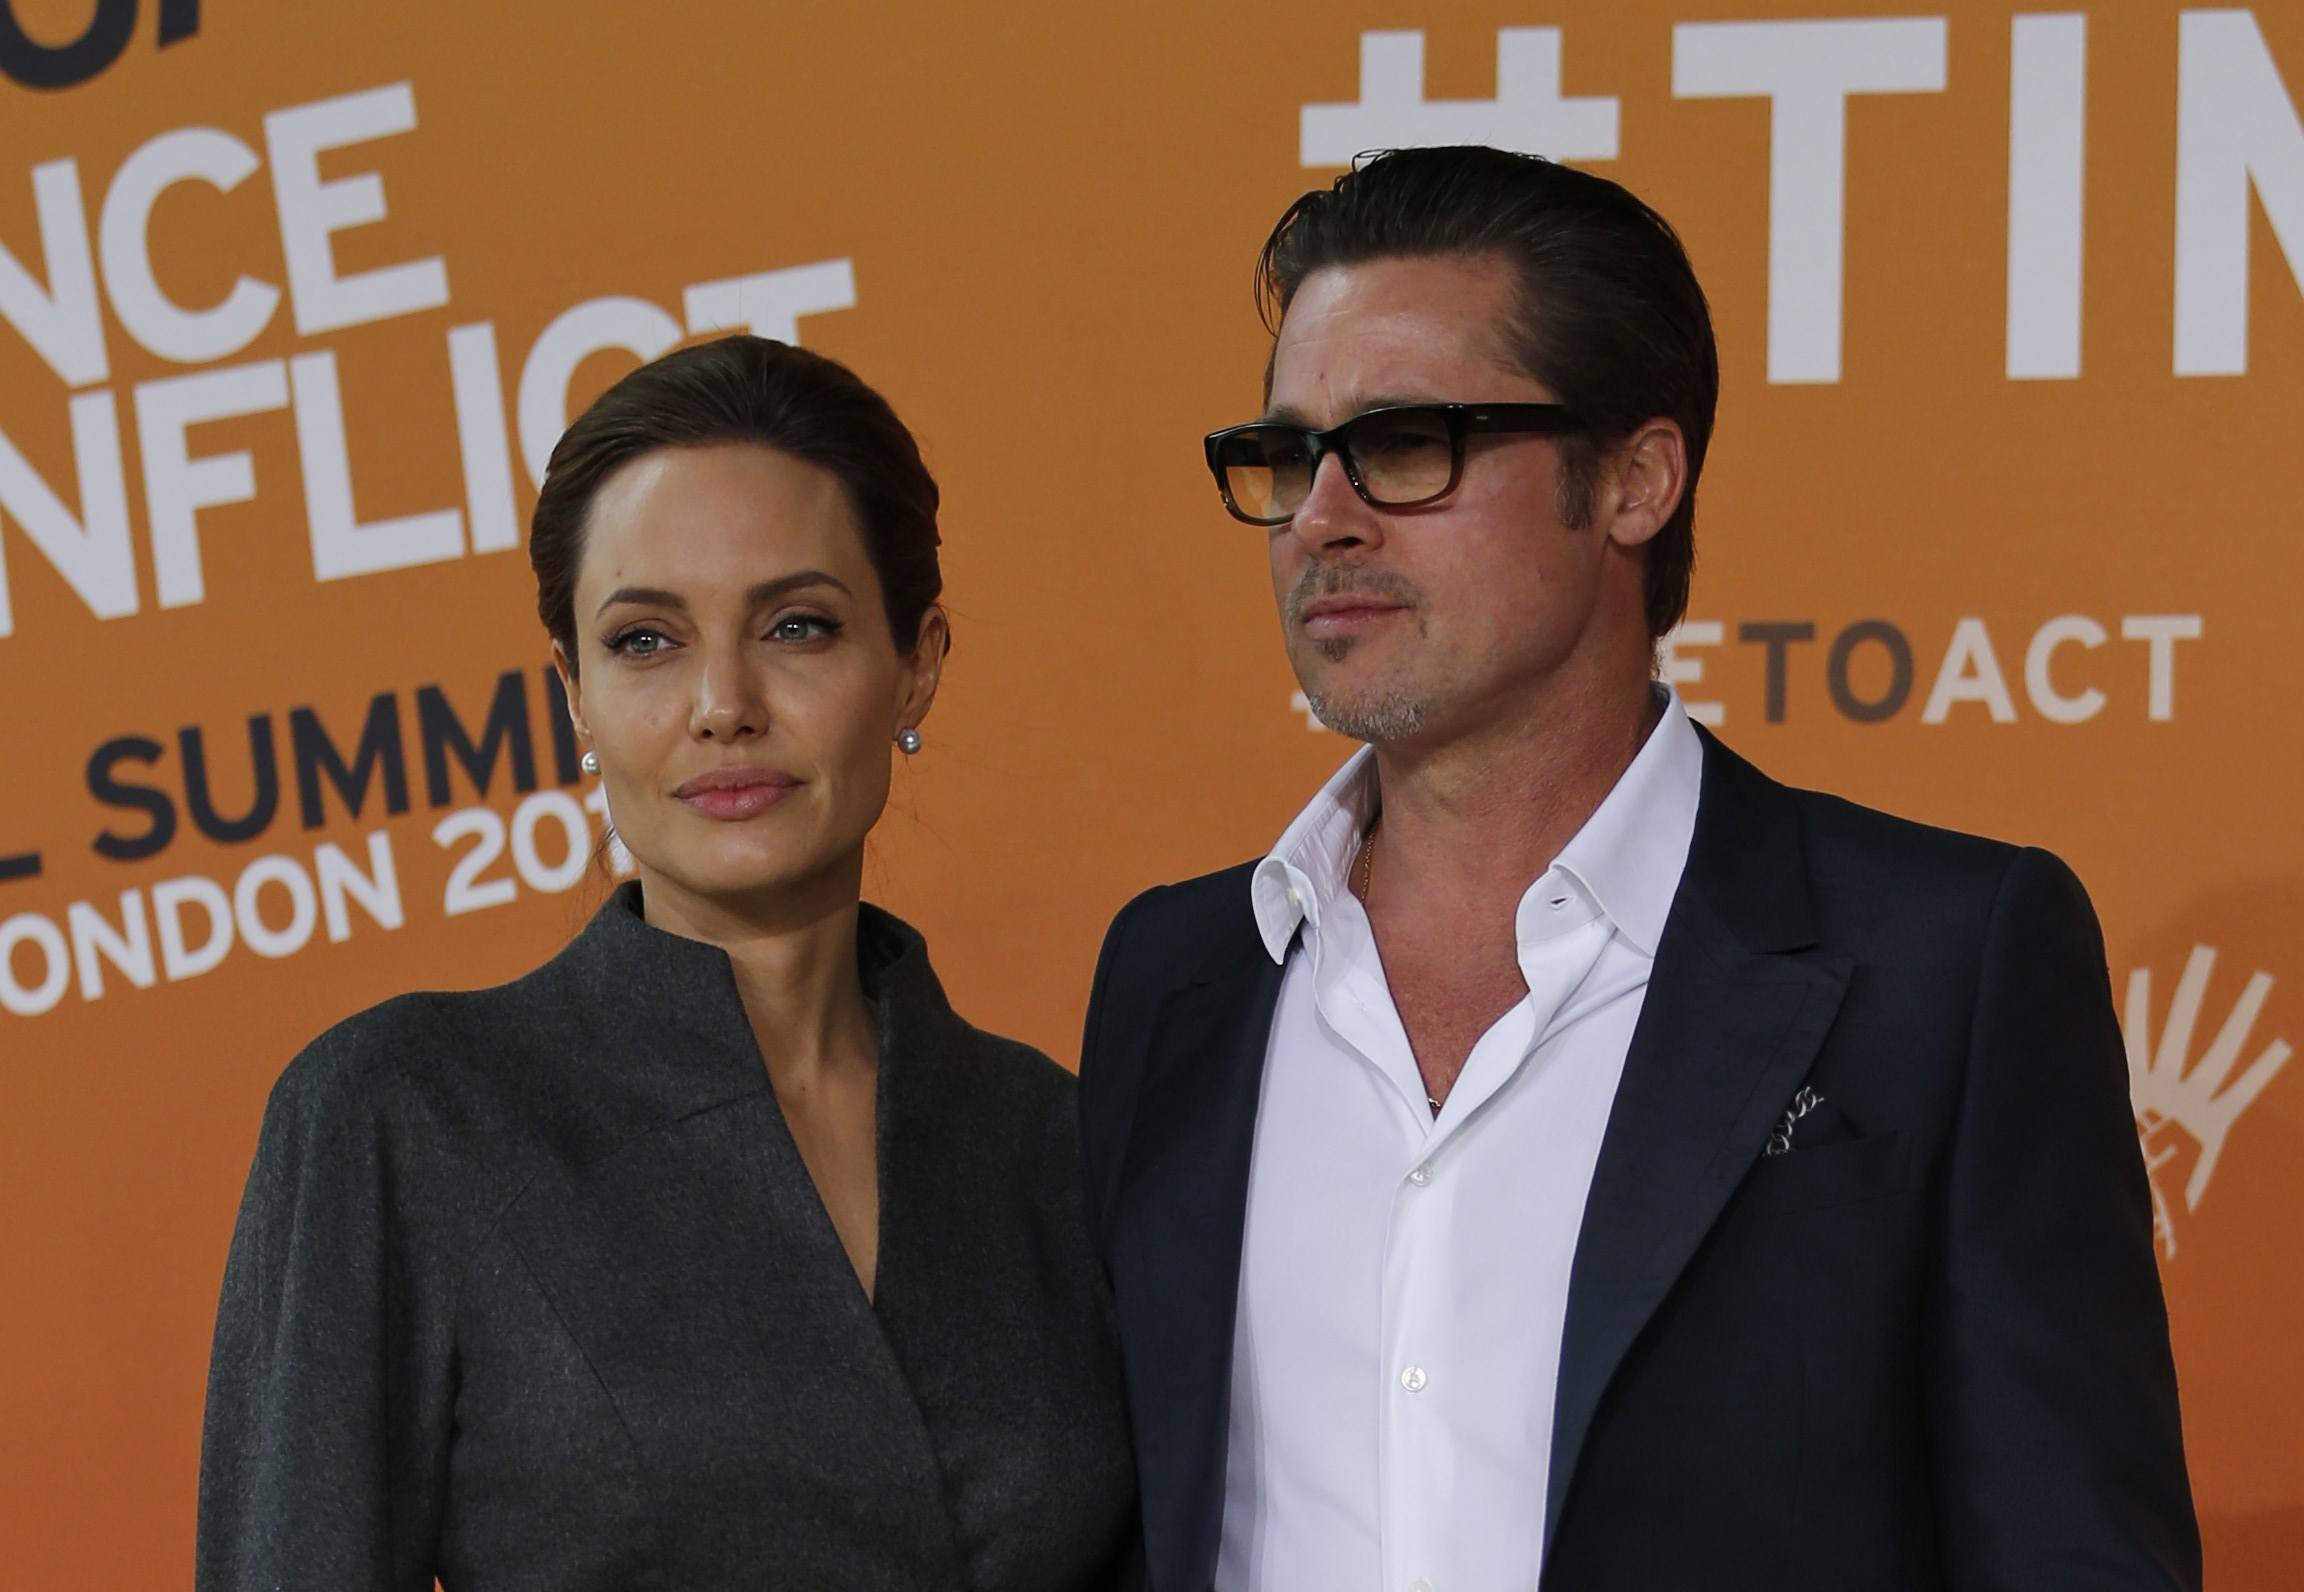 Angelina Jolie, left, special Envoy of the United Nations high commissioner for refugees, accompanied by her partner, actor Brad Pitt, pose for the photographers as they arrive at the End Sexual Violence in Conflict summit Friday in London. Jolie was named an honorary dame by Queen Elizabeth II for her work combating sexual violence in war zones.